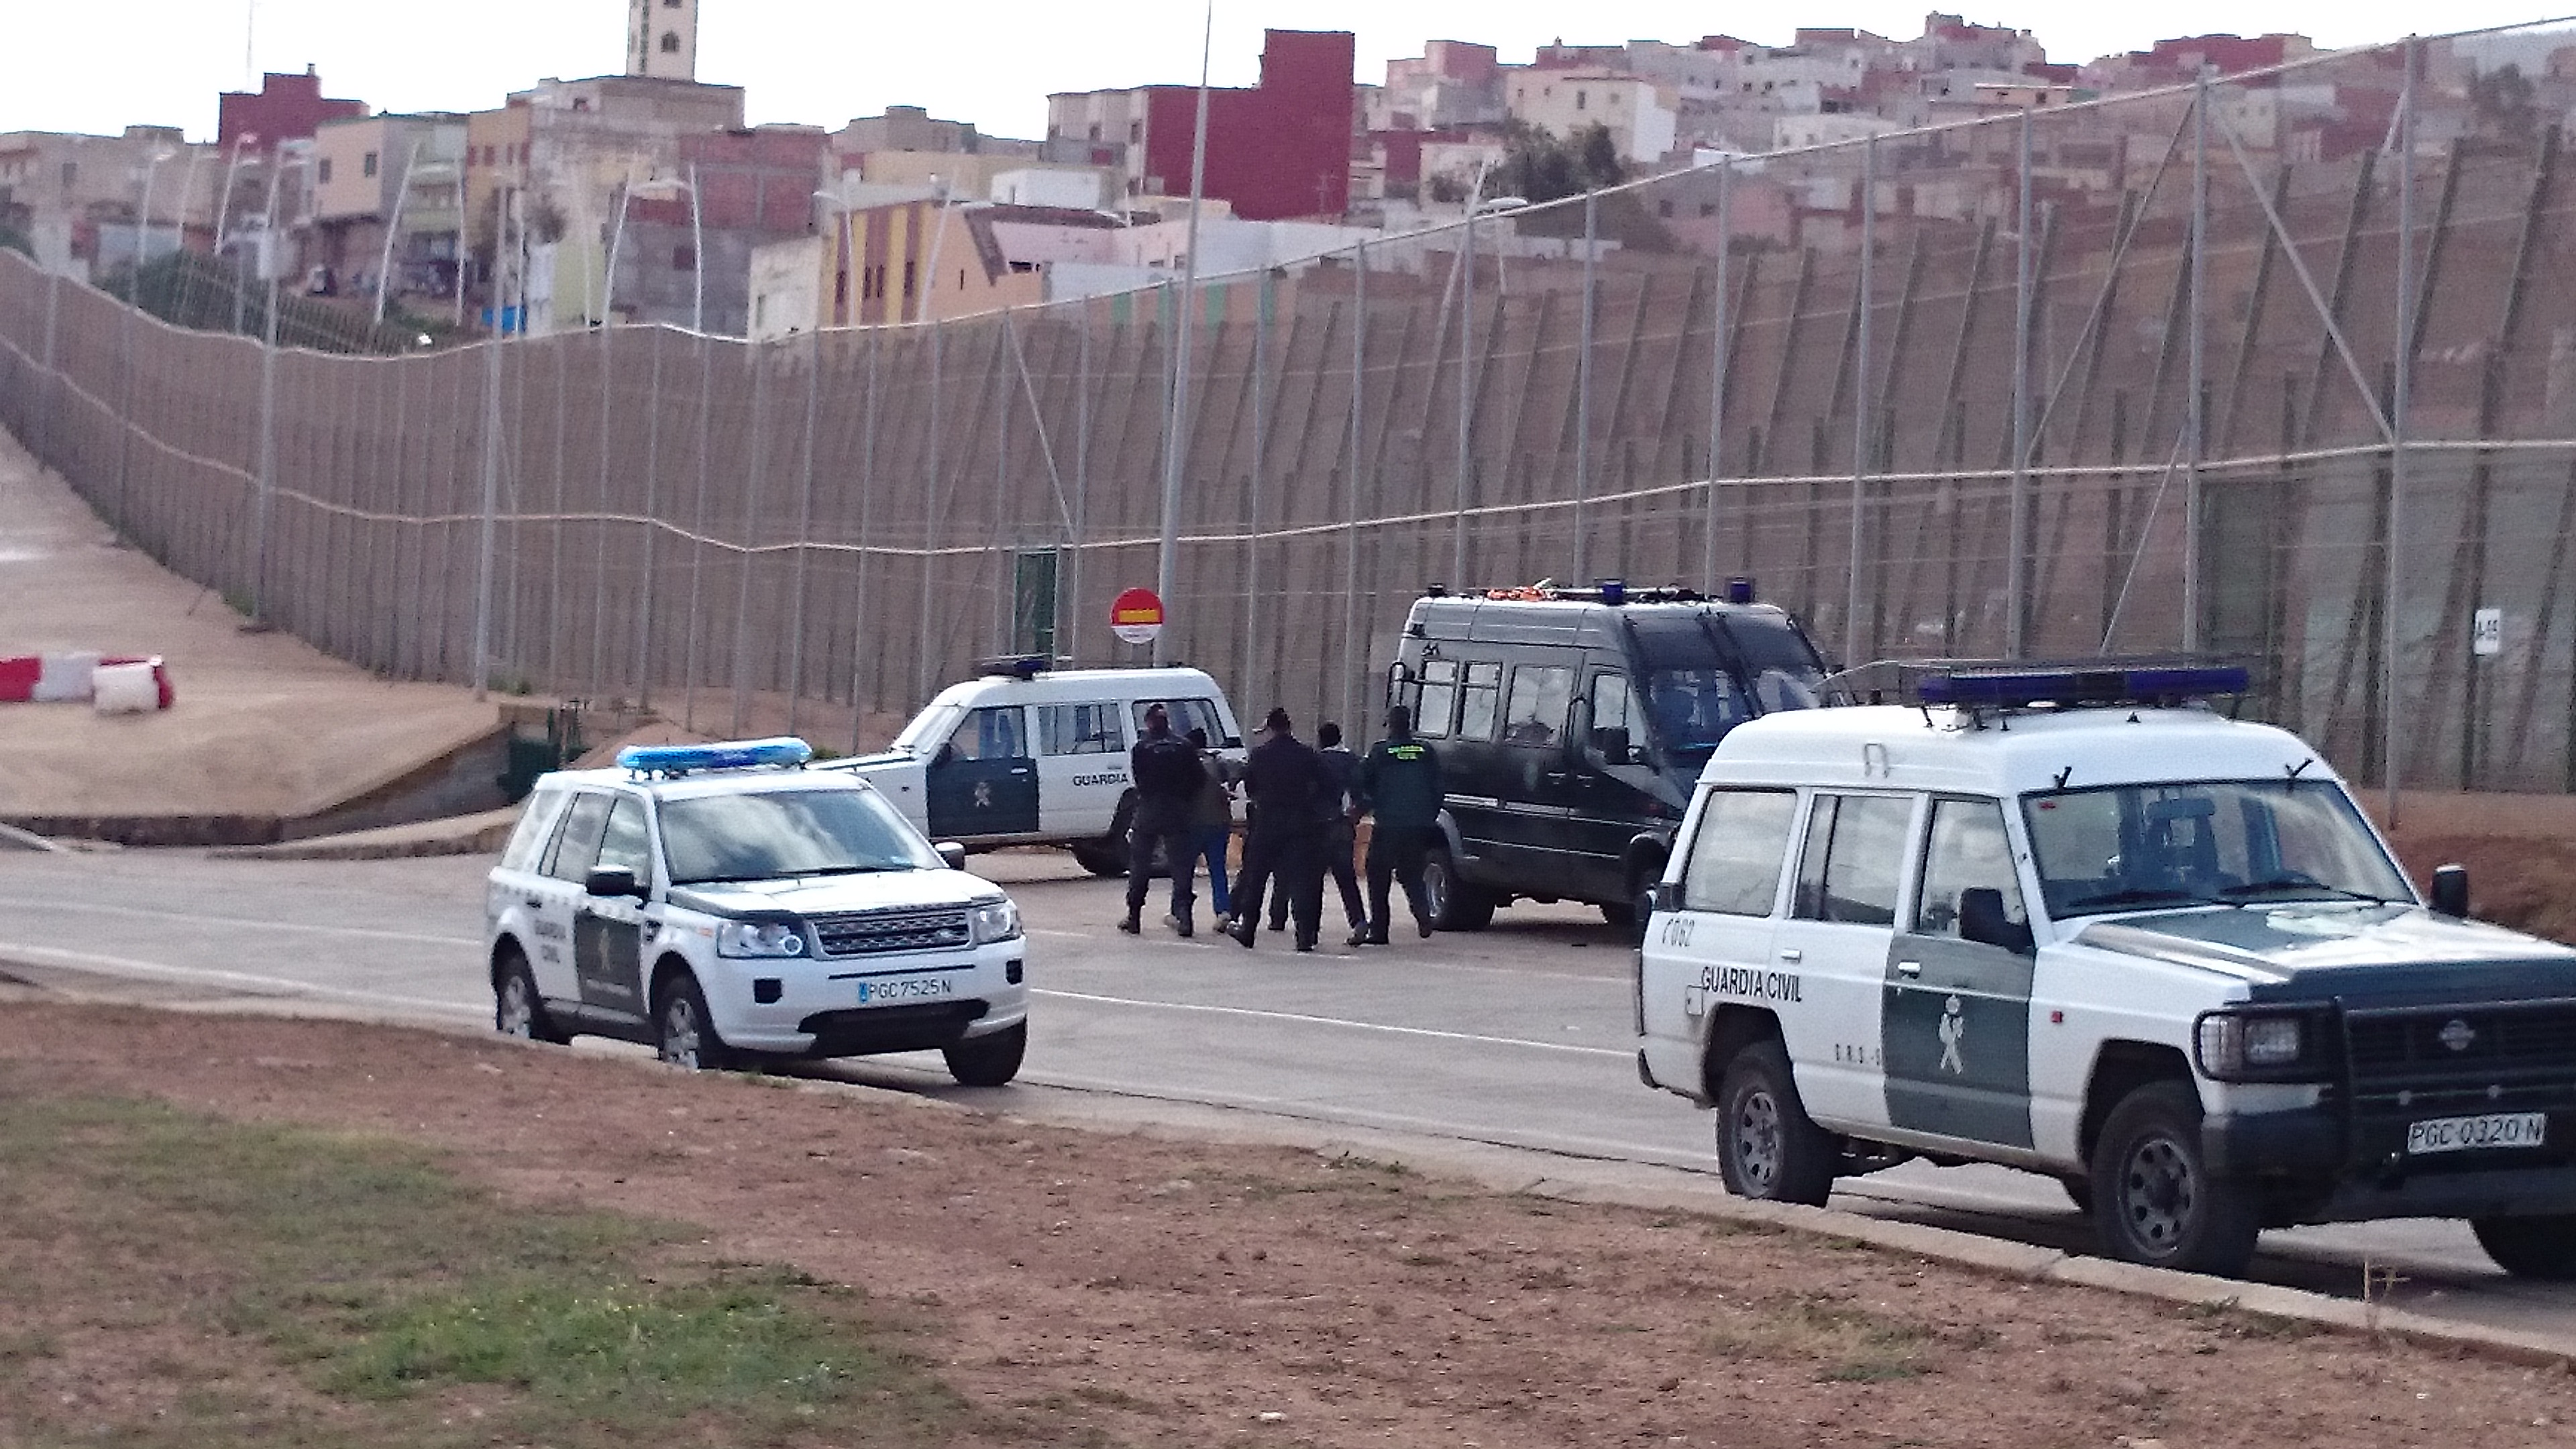 Melilla, December 2014: The Guardia Civil grabbing and handcuffing D.D. on Spanish side of the border © Photo: ECCHR